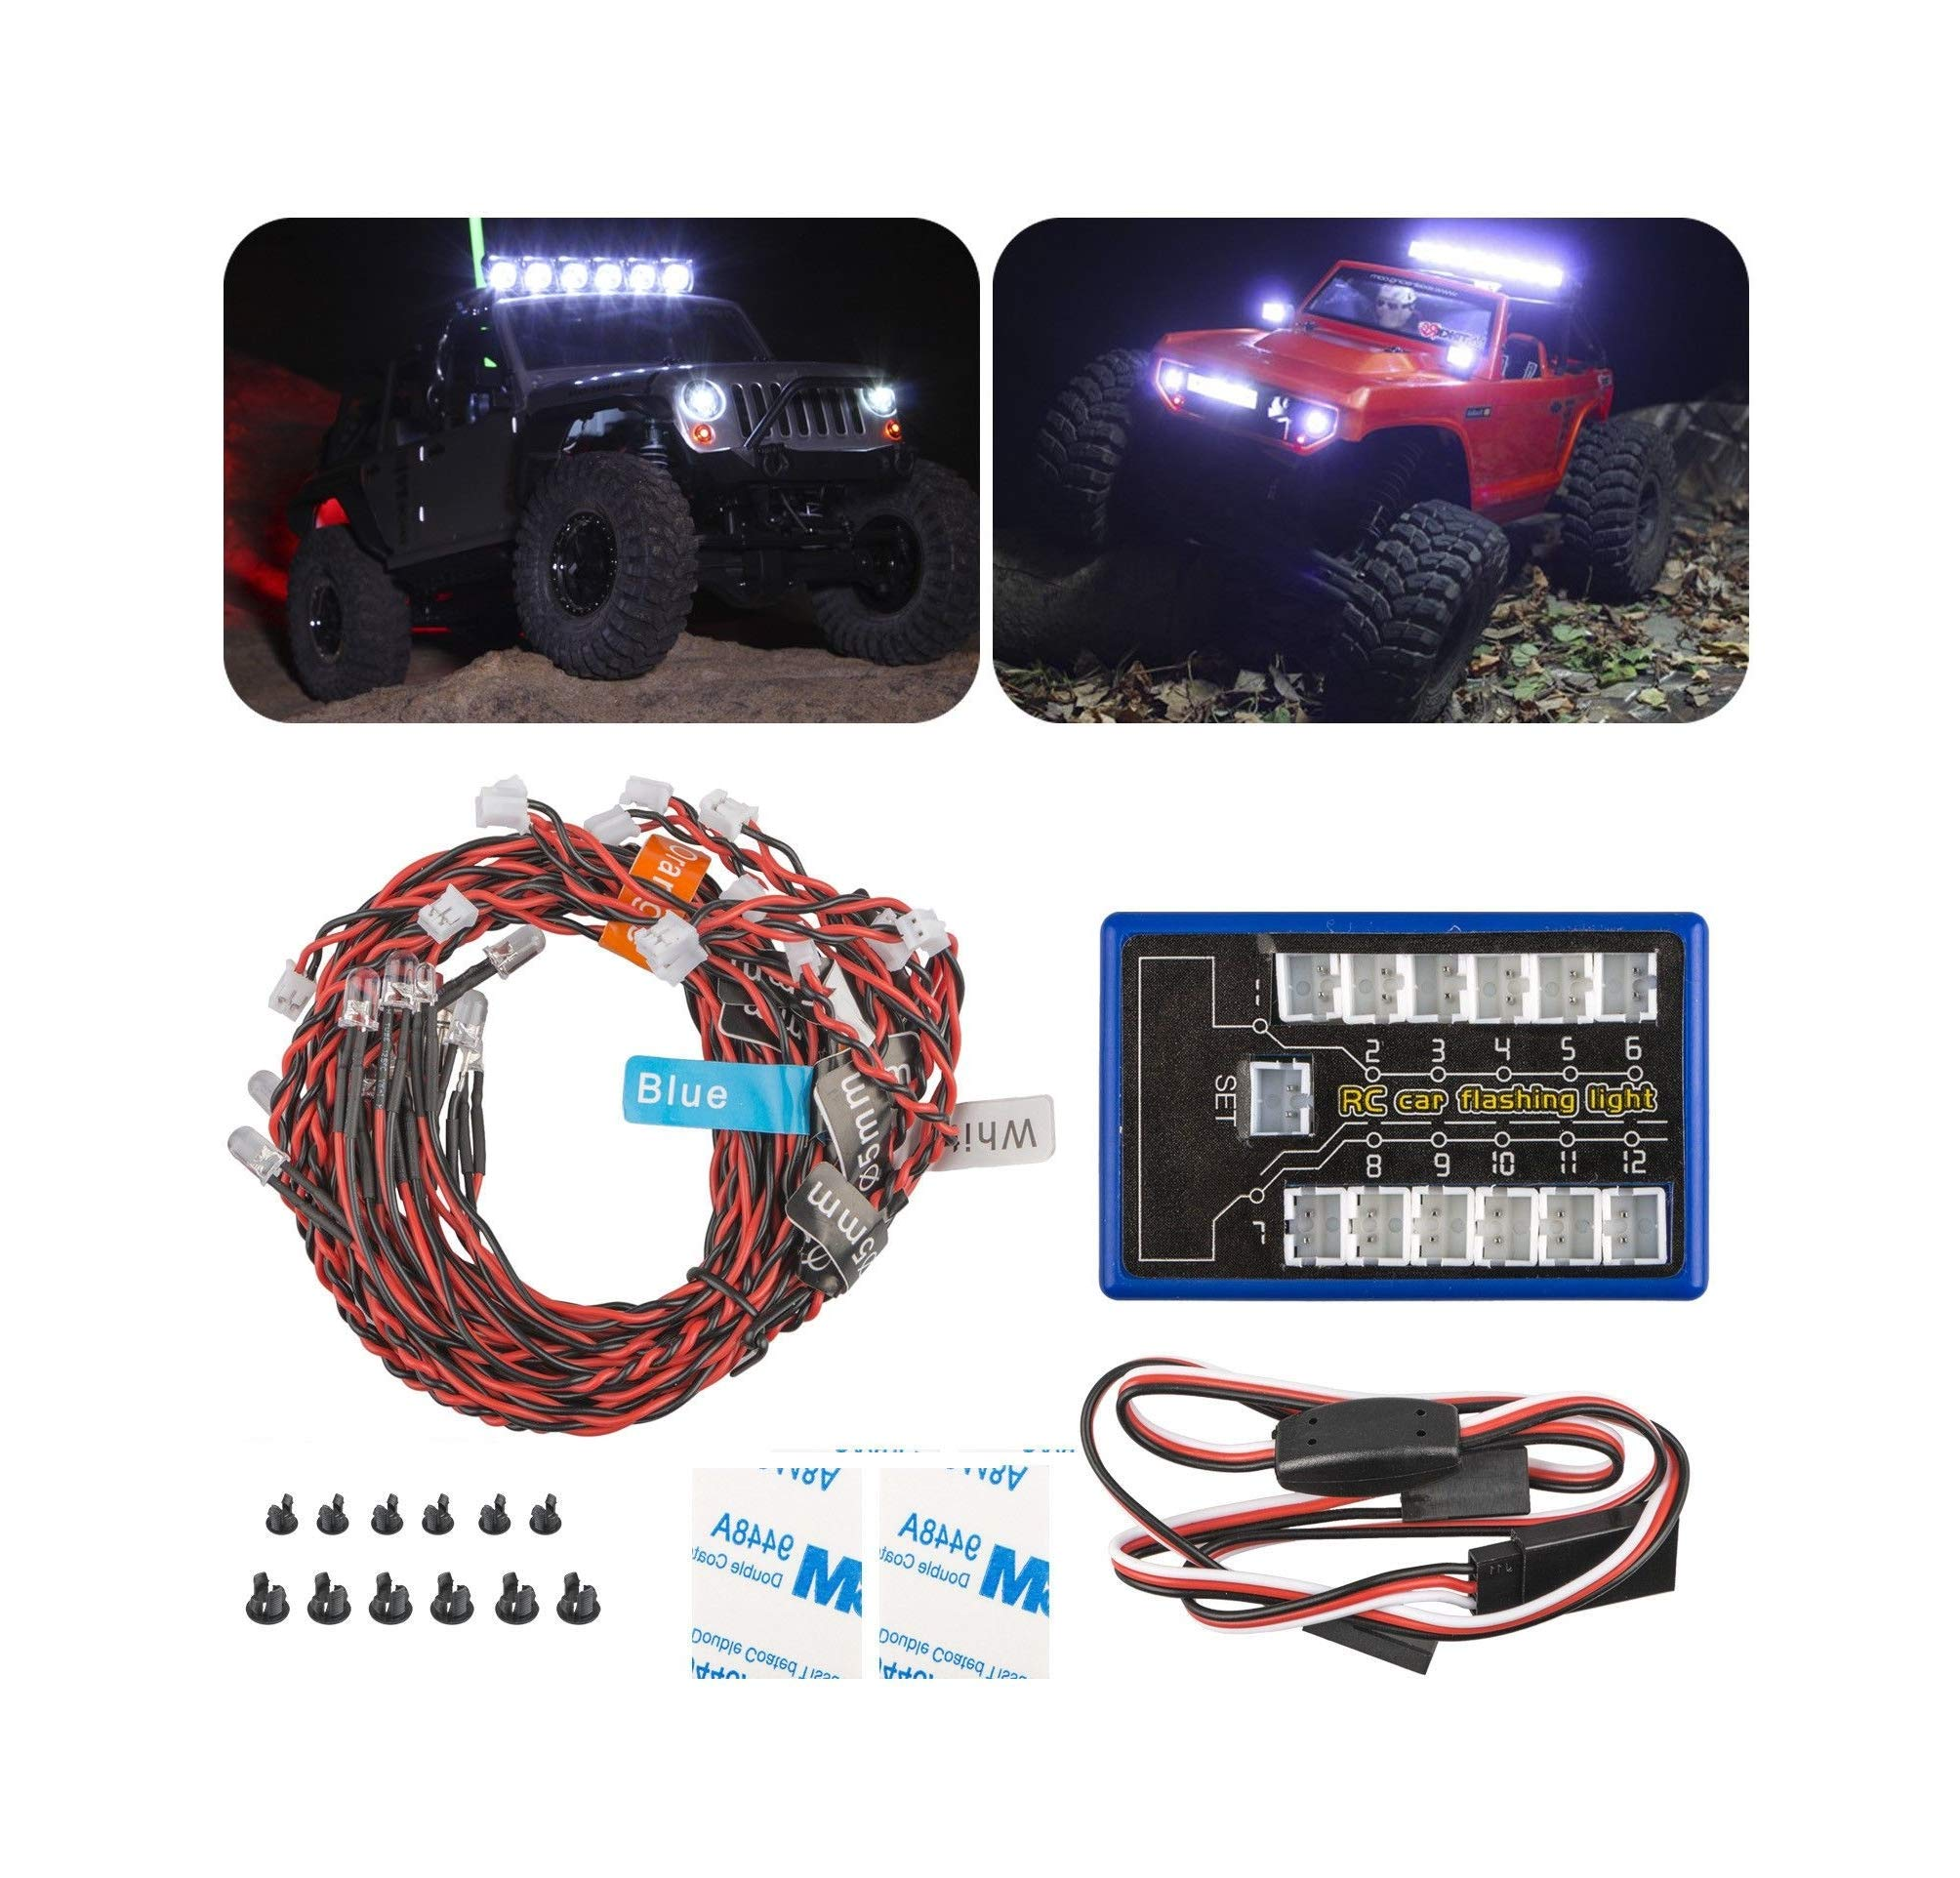 Reliable LED Light Kit Brake&Headlight&Signal 2.4ghz PPM FM for HSP Hobby RC 1:10 Car Truck Quick Arrive